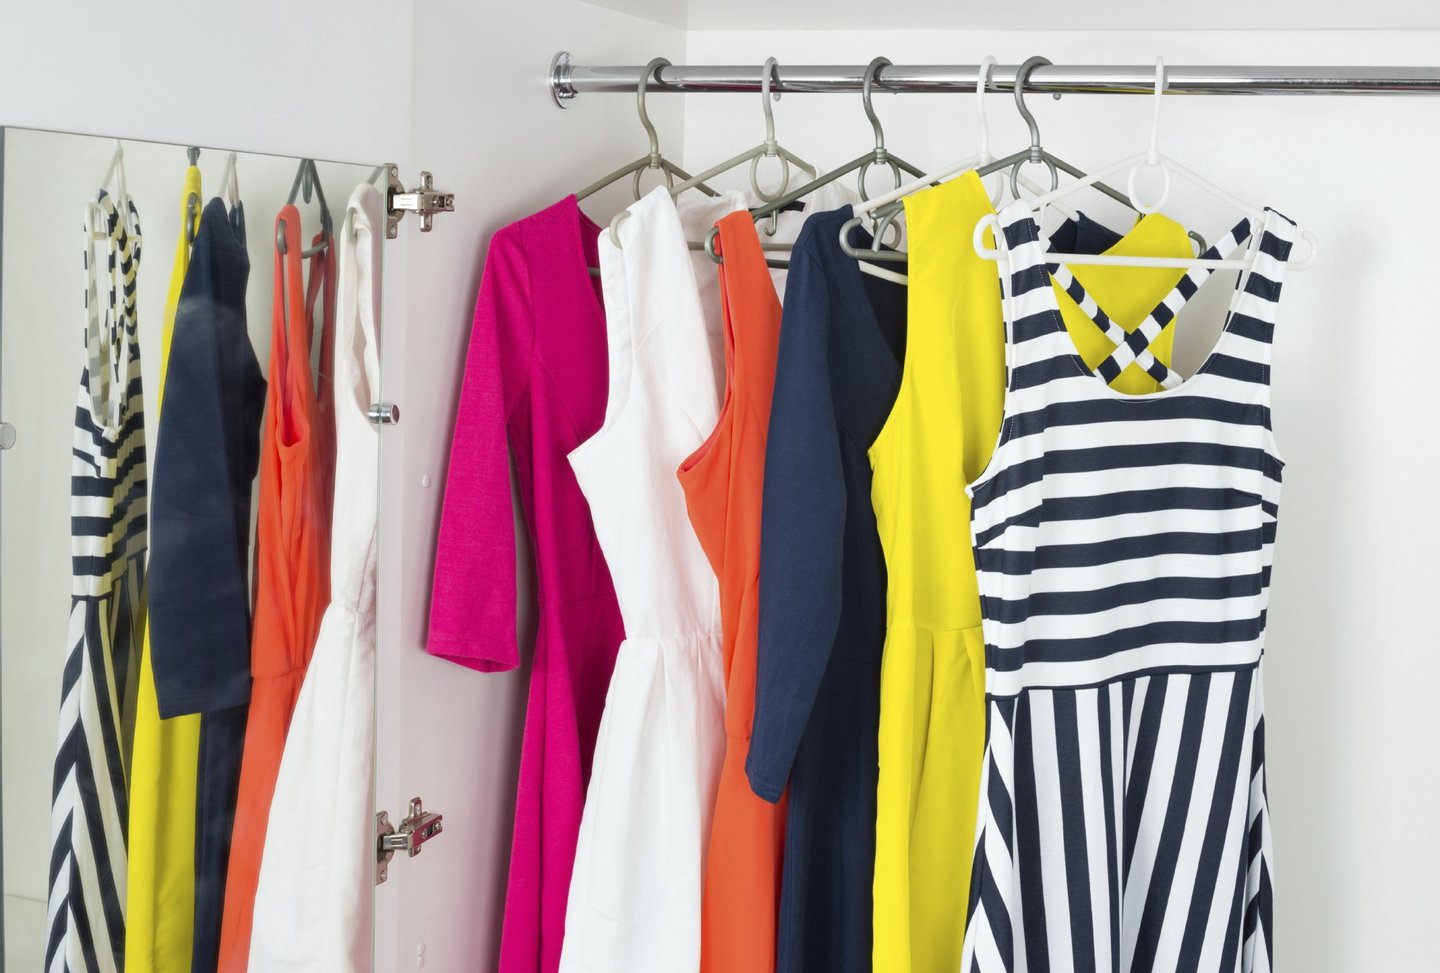 choose, closet, clothes, clothing, collection, colorful, cotton, design, dress, fashion, garment, hanger, interior, lifestyle, rack, style, textile, variety, wardrobe, wear, white, bright, dresses, orange, female, many, casual, open, fabric, color, home, house, indoors, apparel, different, modern, women, room, inside, choice, attire, cupboard, summer, spring, series, striped, strip, cabinet, zzzaaaaaaieefdedfpdadddddj,